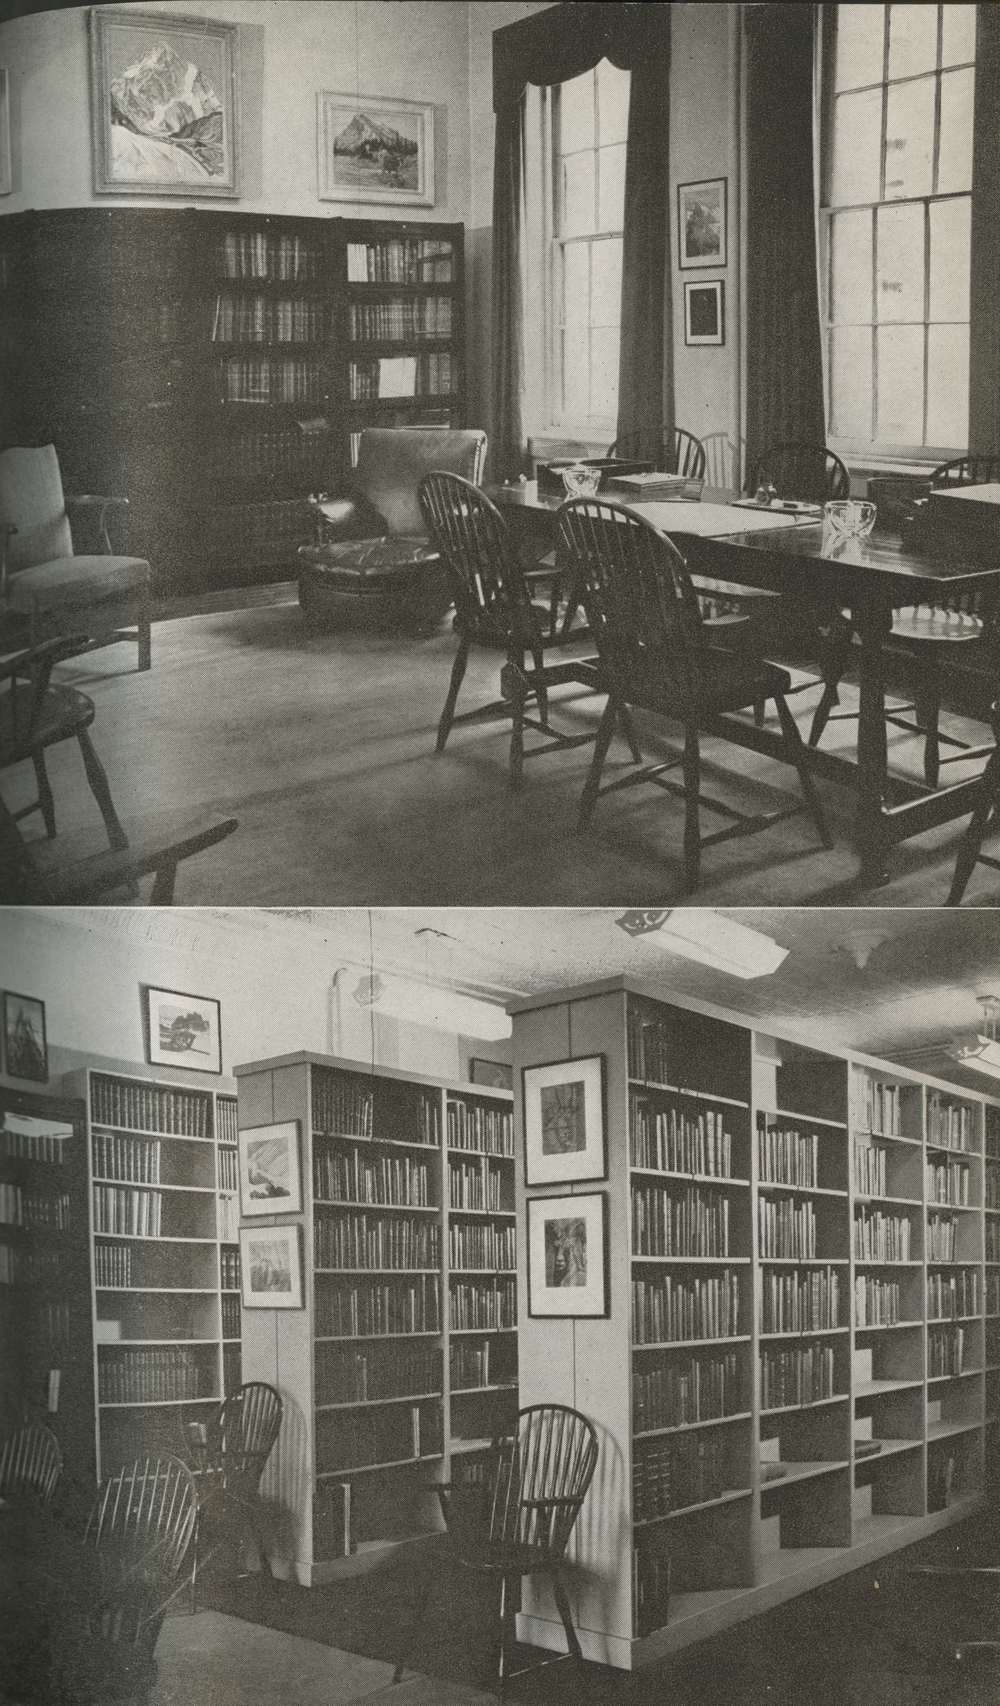 Photo: Henry S. Hall, Jr. American Alpine Club Library                      The Club Rooms & Library at 113 East 90th Street, NY, in 1948.